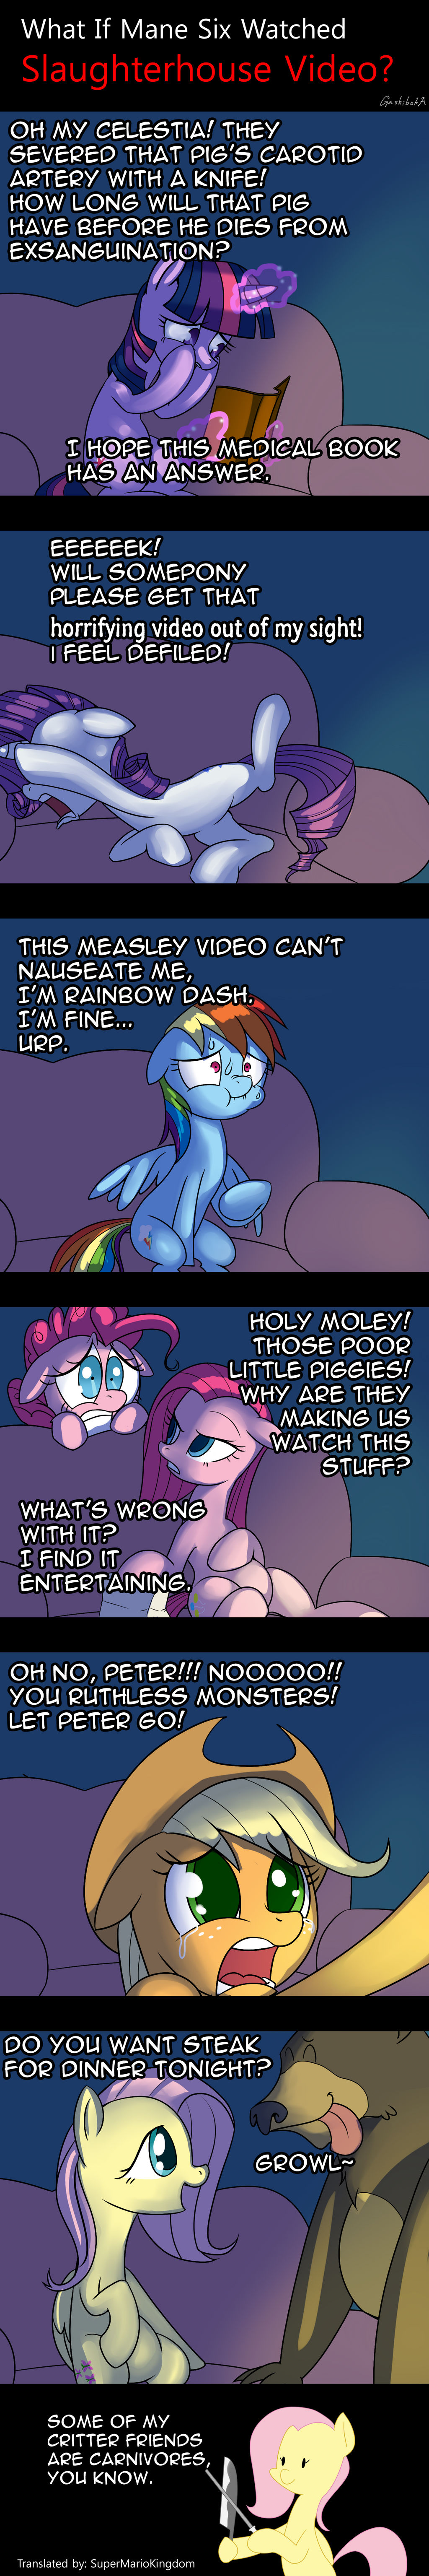 What If Mane Six Watched  Slaughterhouse Video?